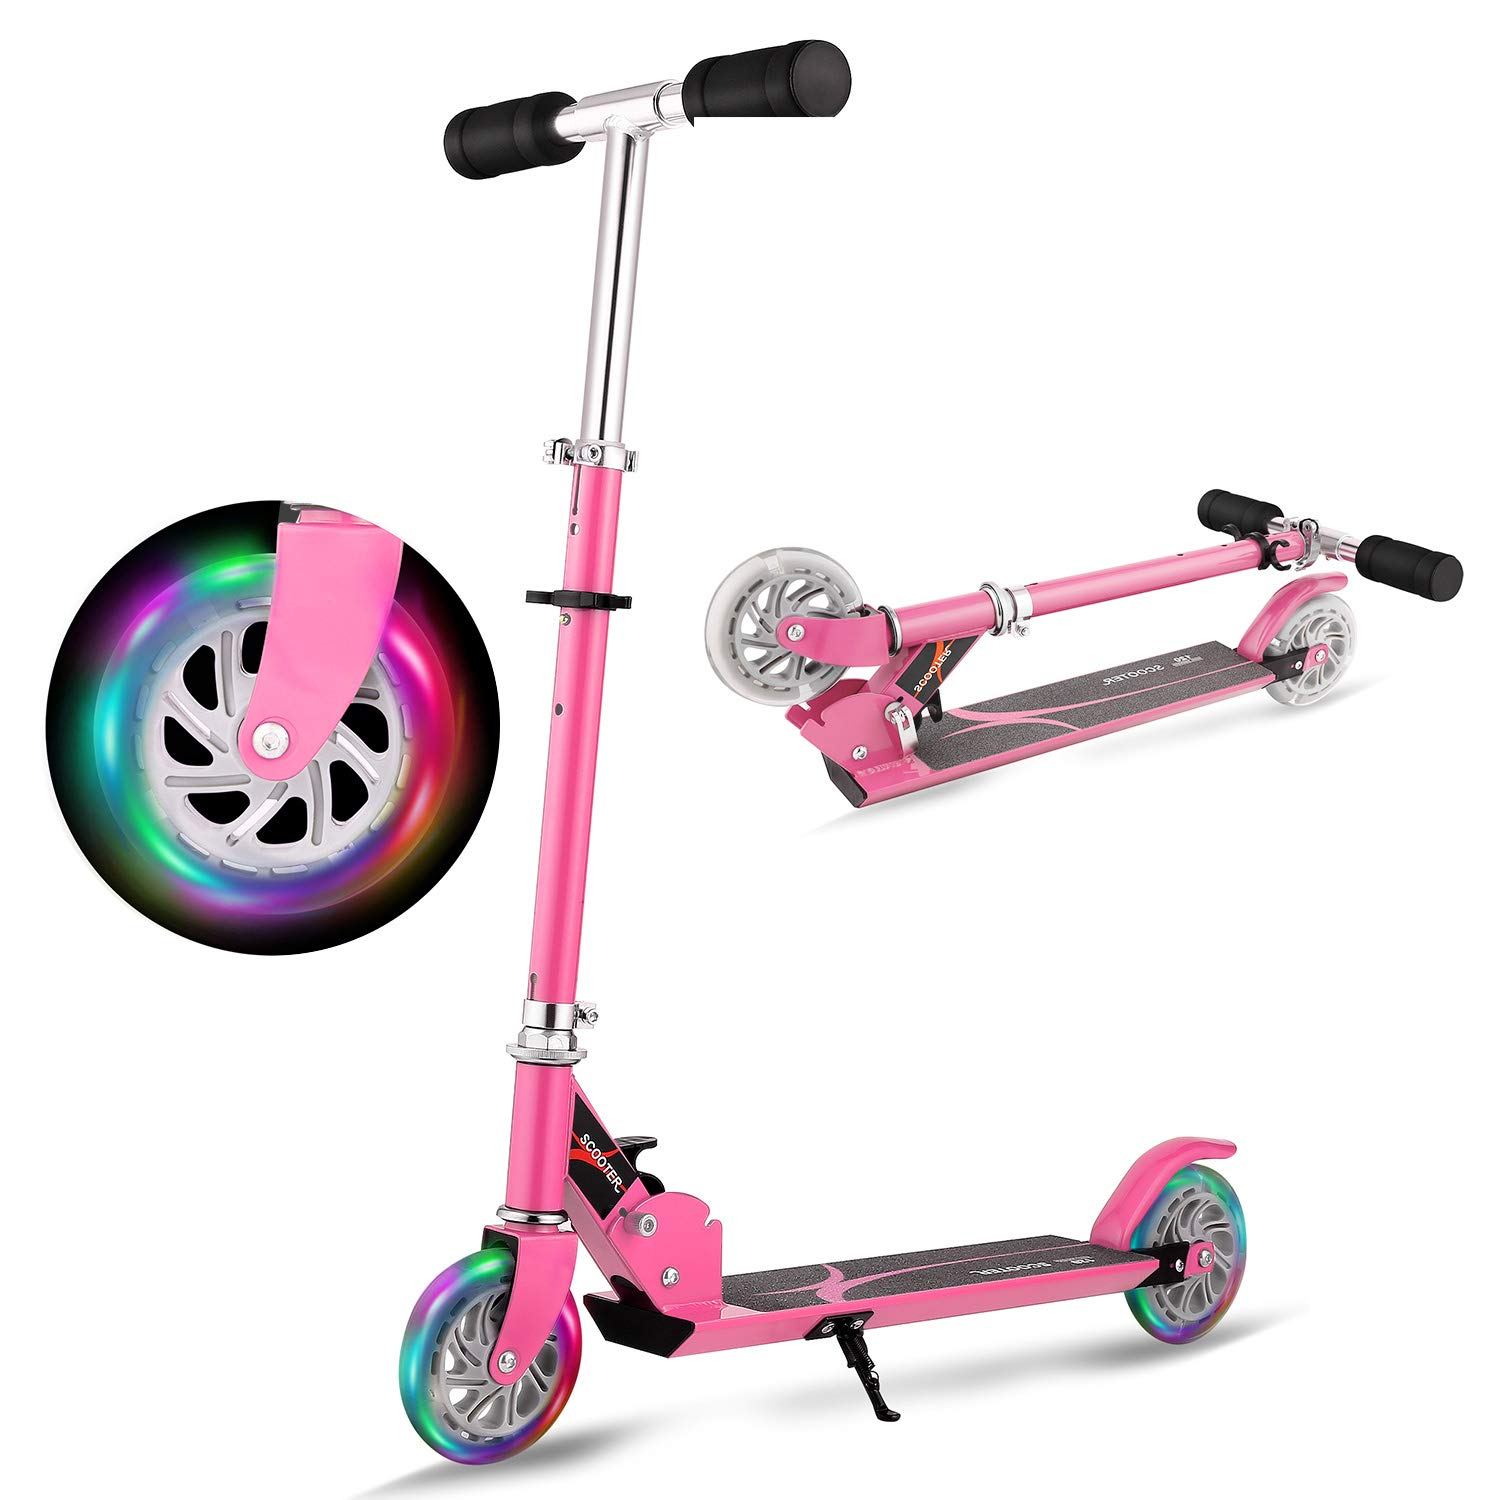 Hikole Scooter for Kids | Scooters Foldable Portable Adjustable Height Kick Scooter with 2 LED Light Up PU Flashing Wheels, Birthday Gifts for Toddlers Boys Girls Kids Age 4-12 Years Old by Hikole